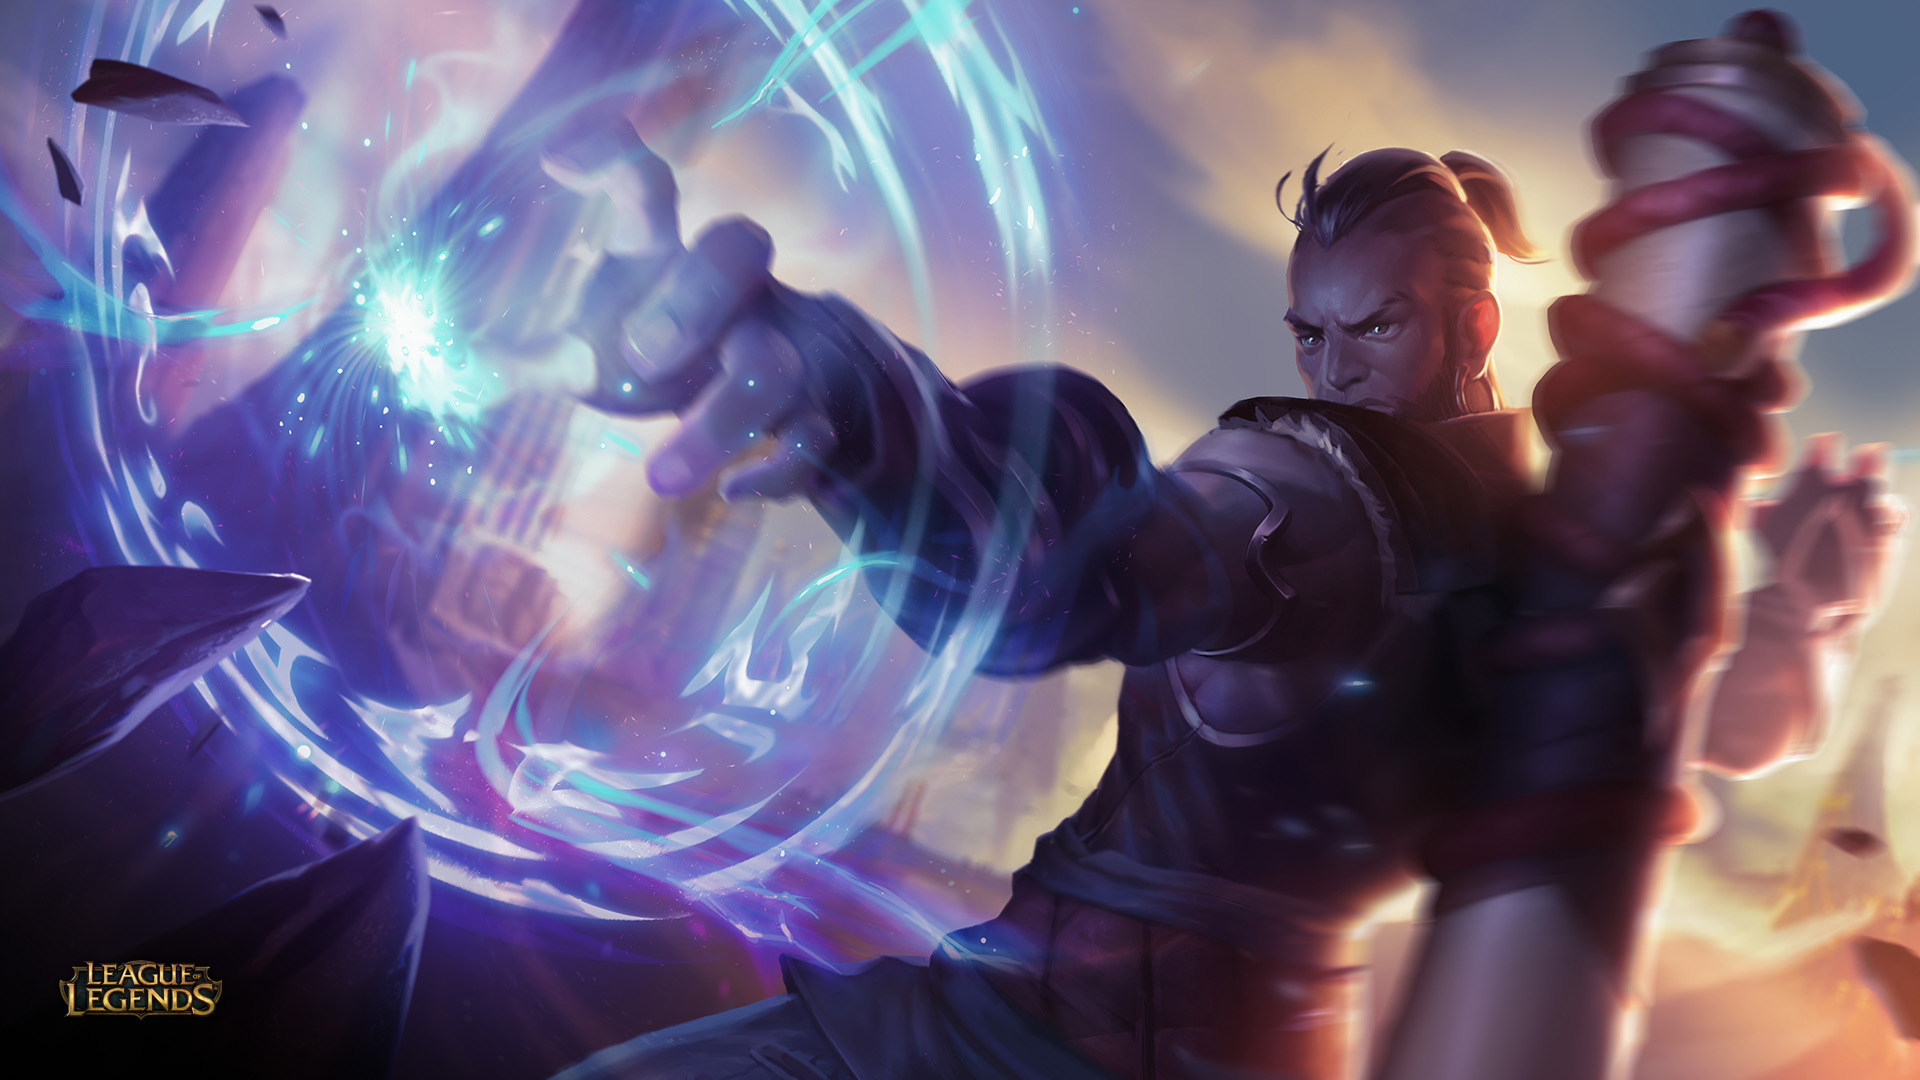 Human Ryze League Of Legends Wallpaper HD | Art-of-LoL Orianna Splash Art